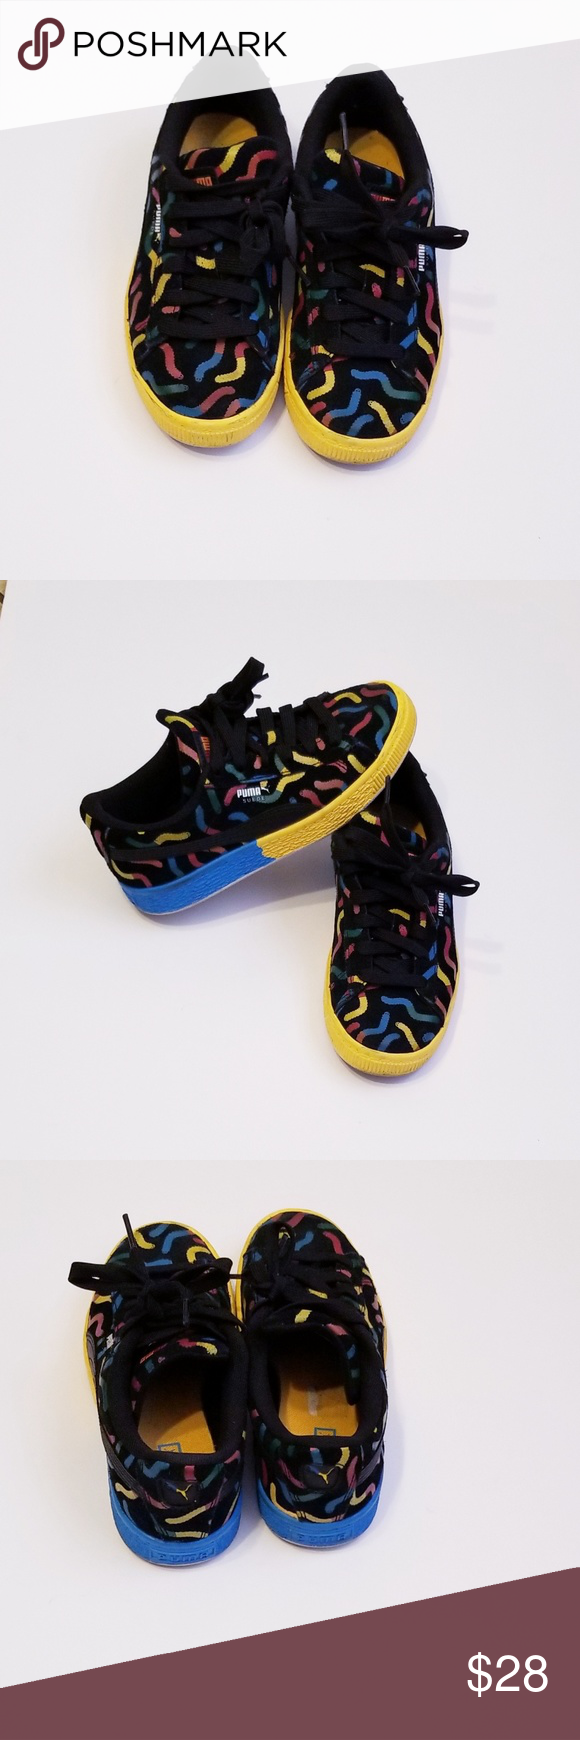 PUMA LIMITED EDITION GUMMY WORM KIDS PUMA SUEDE SNEAKERS